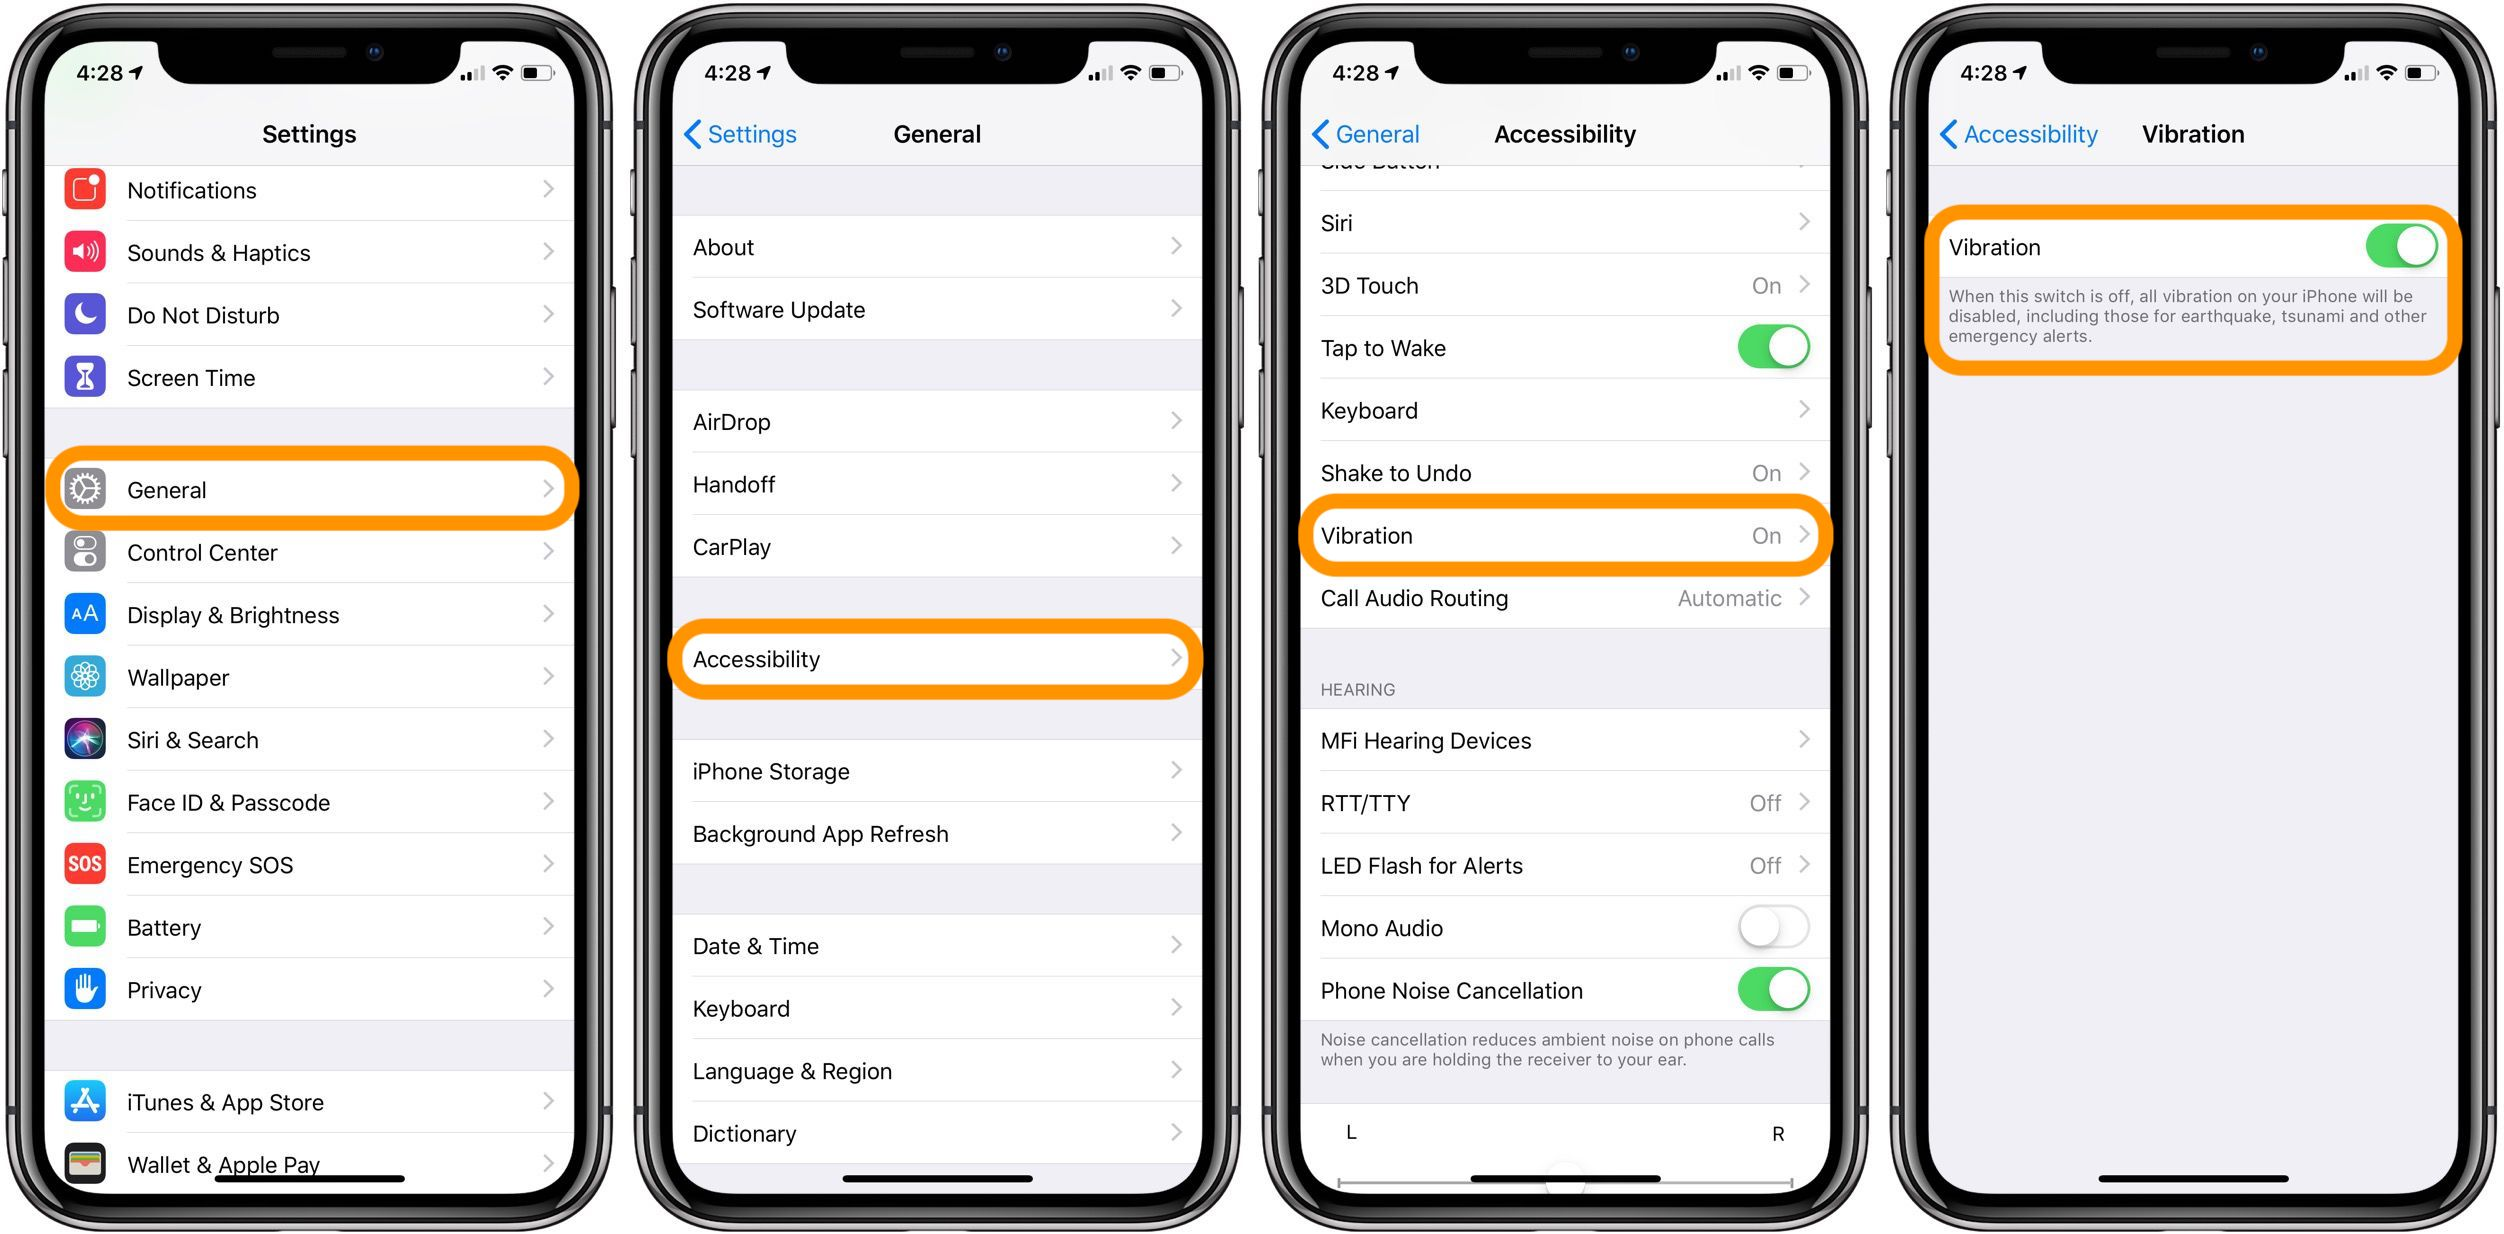 iPhone: How to customize system vibrations and haptic feedback - 9to5Mac